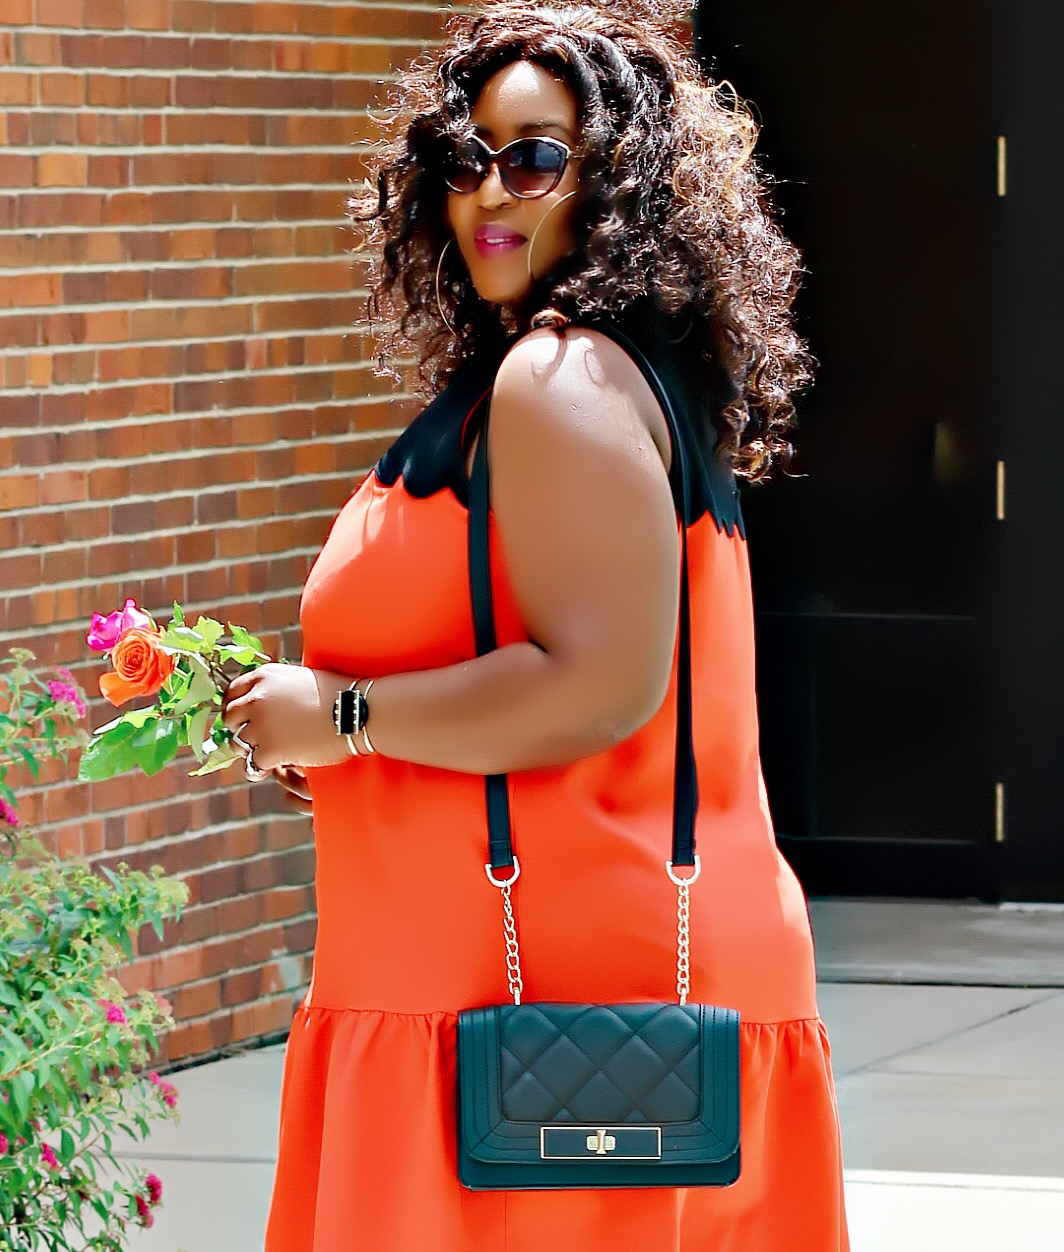 Summer chic | The little orange dress